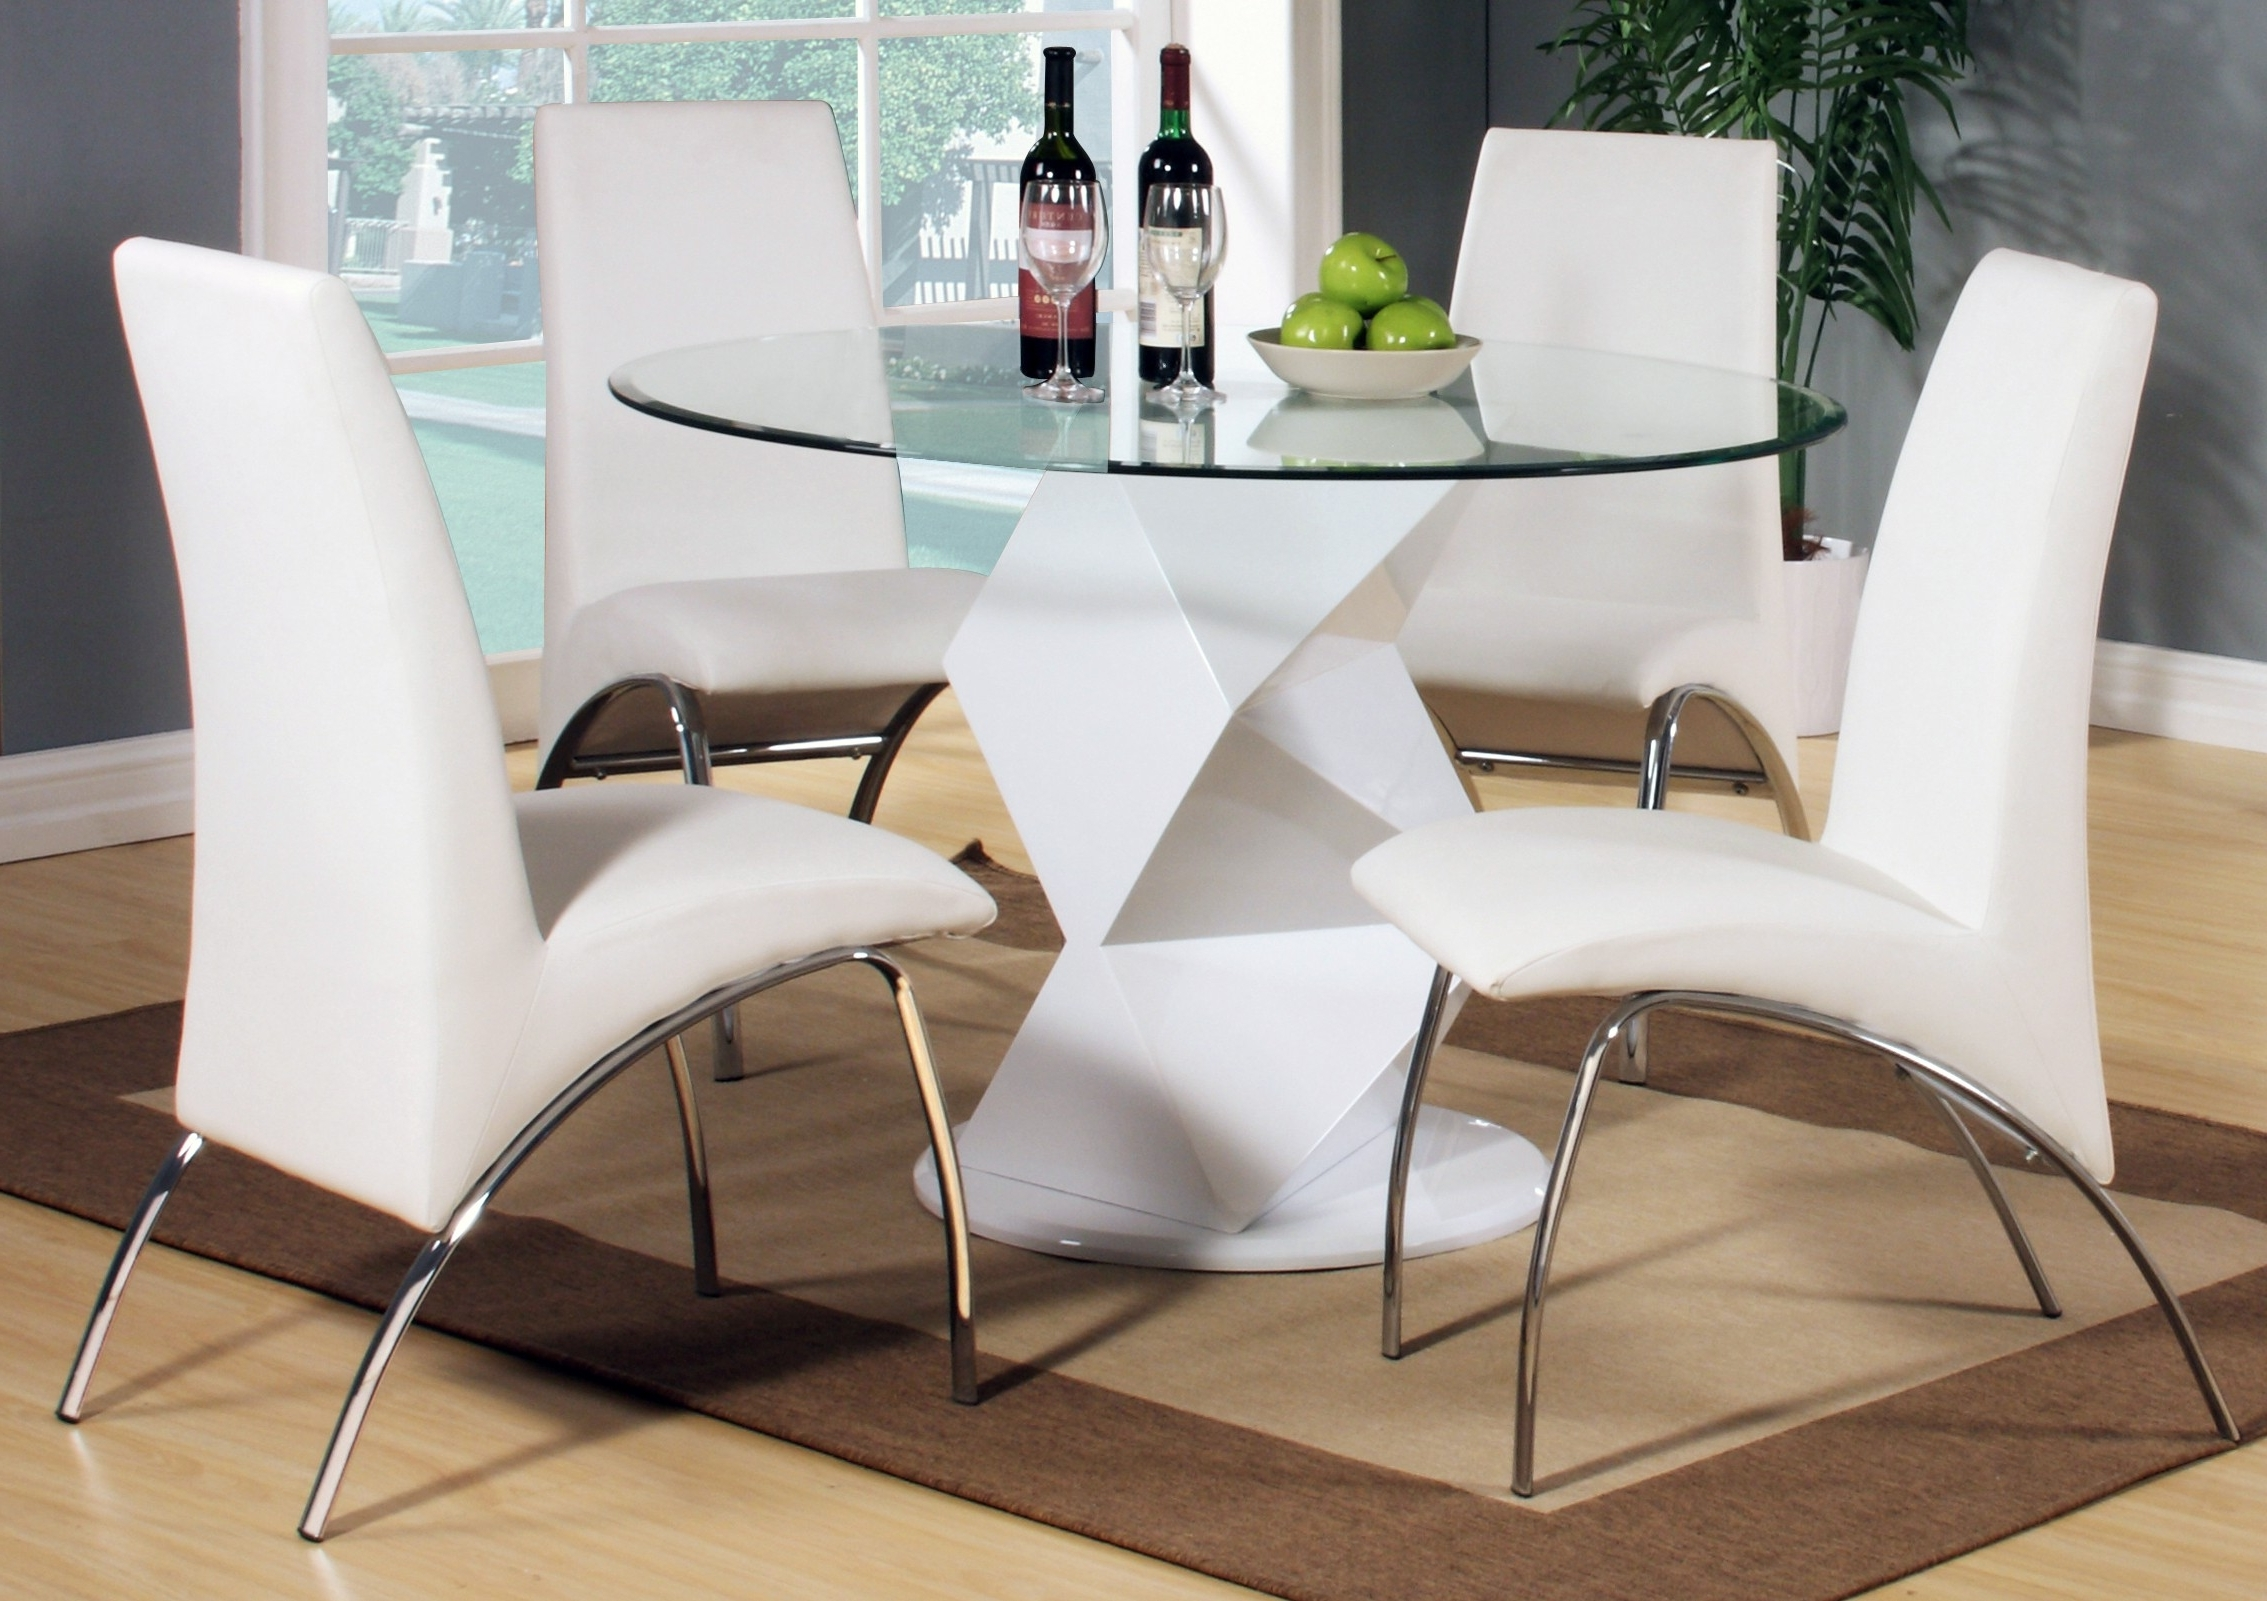 Finn White High Gloss Round Dining Table Set 4 Seater Regarding Preferred Hi Gloss Dining Tables (View 9 of 25)